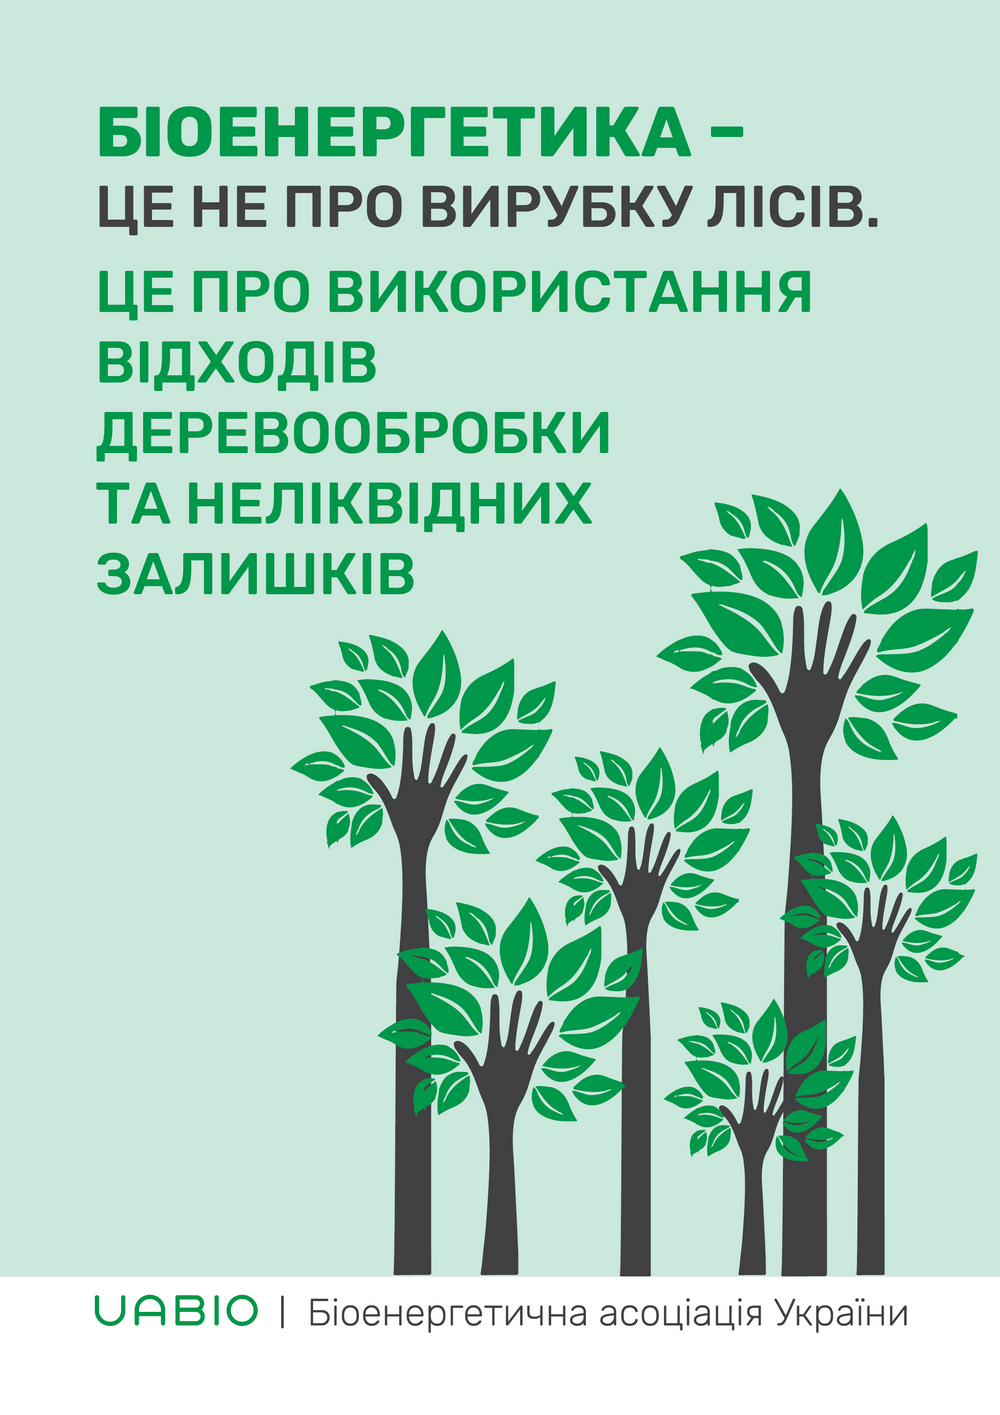 ukrainian-bioenergy-day-campaign-9.jpg